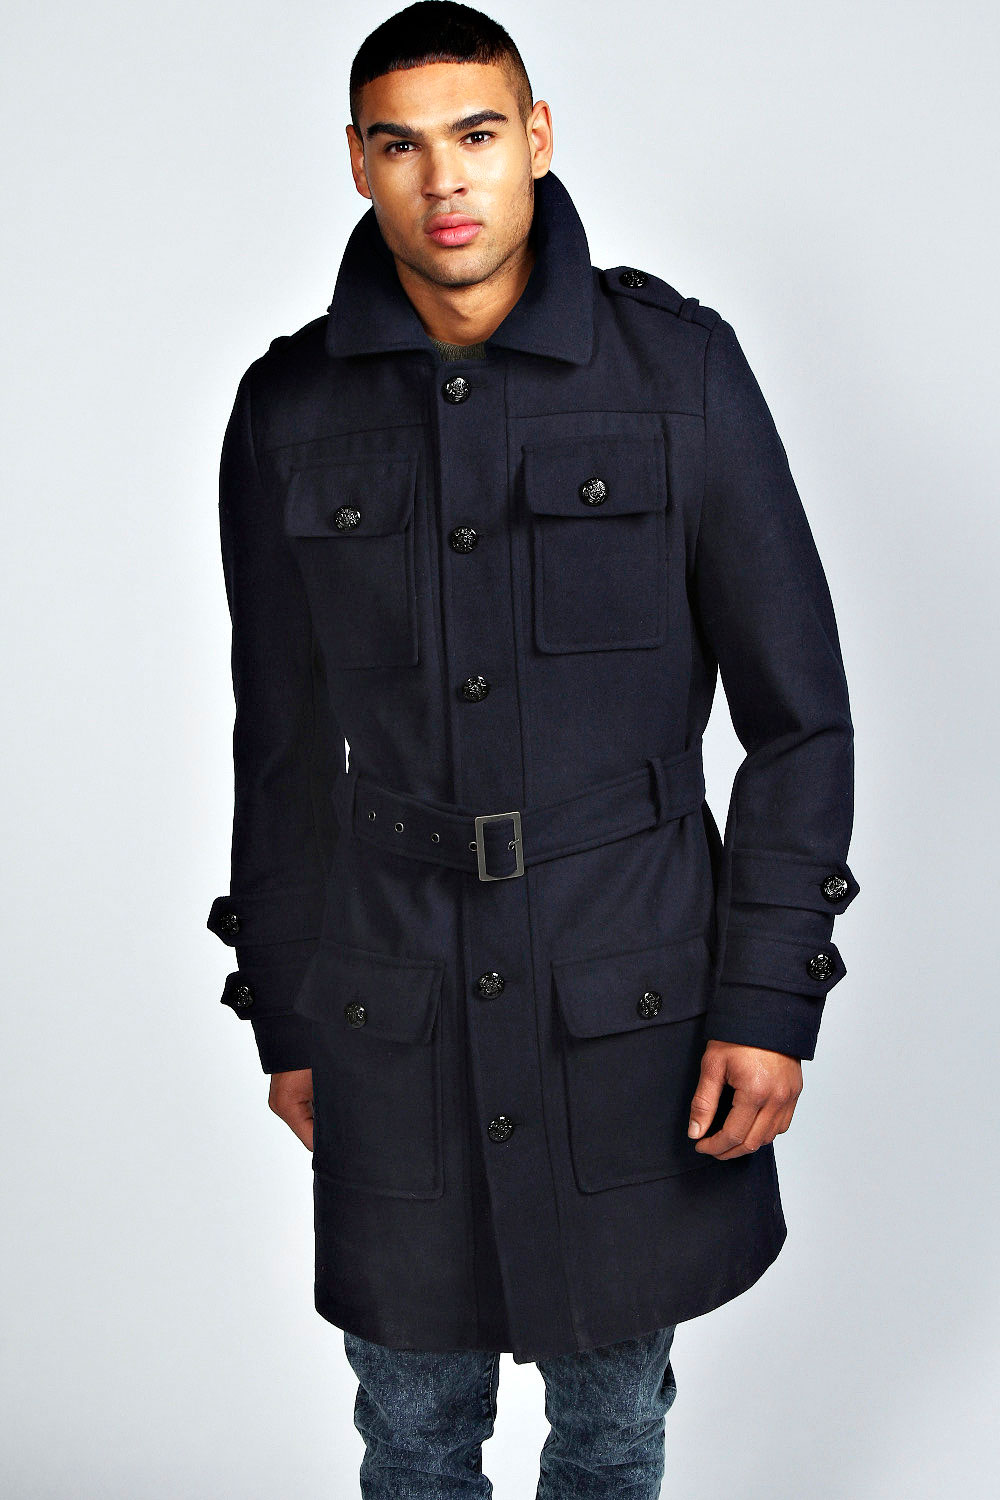 Boohoo-Mens-Military-Crombie-Coat-in-Navy